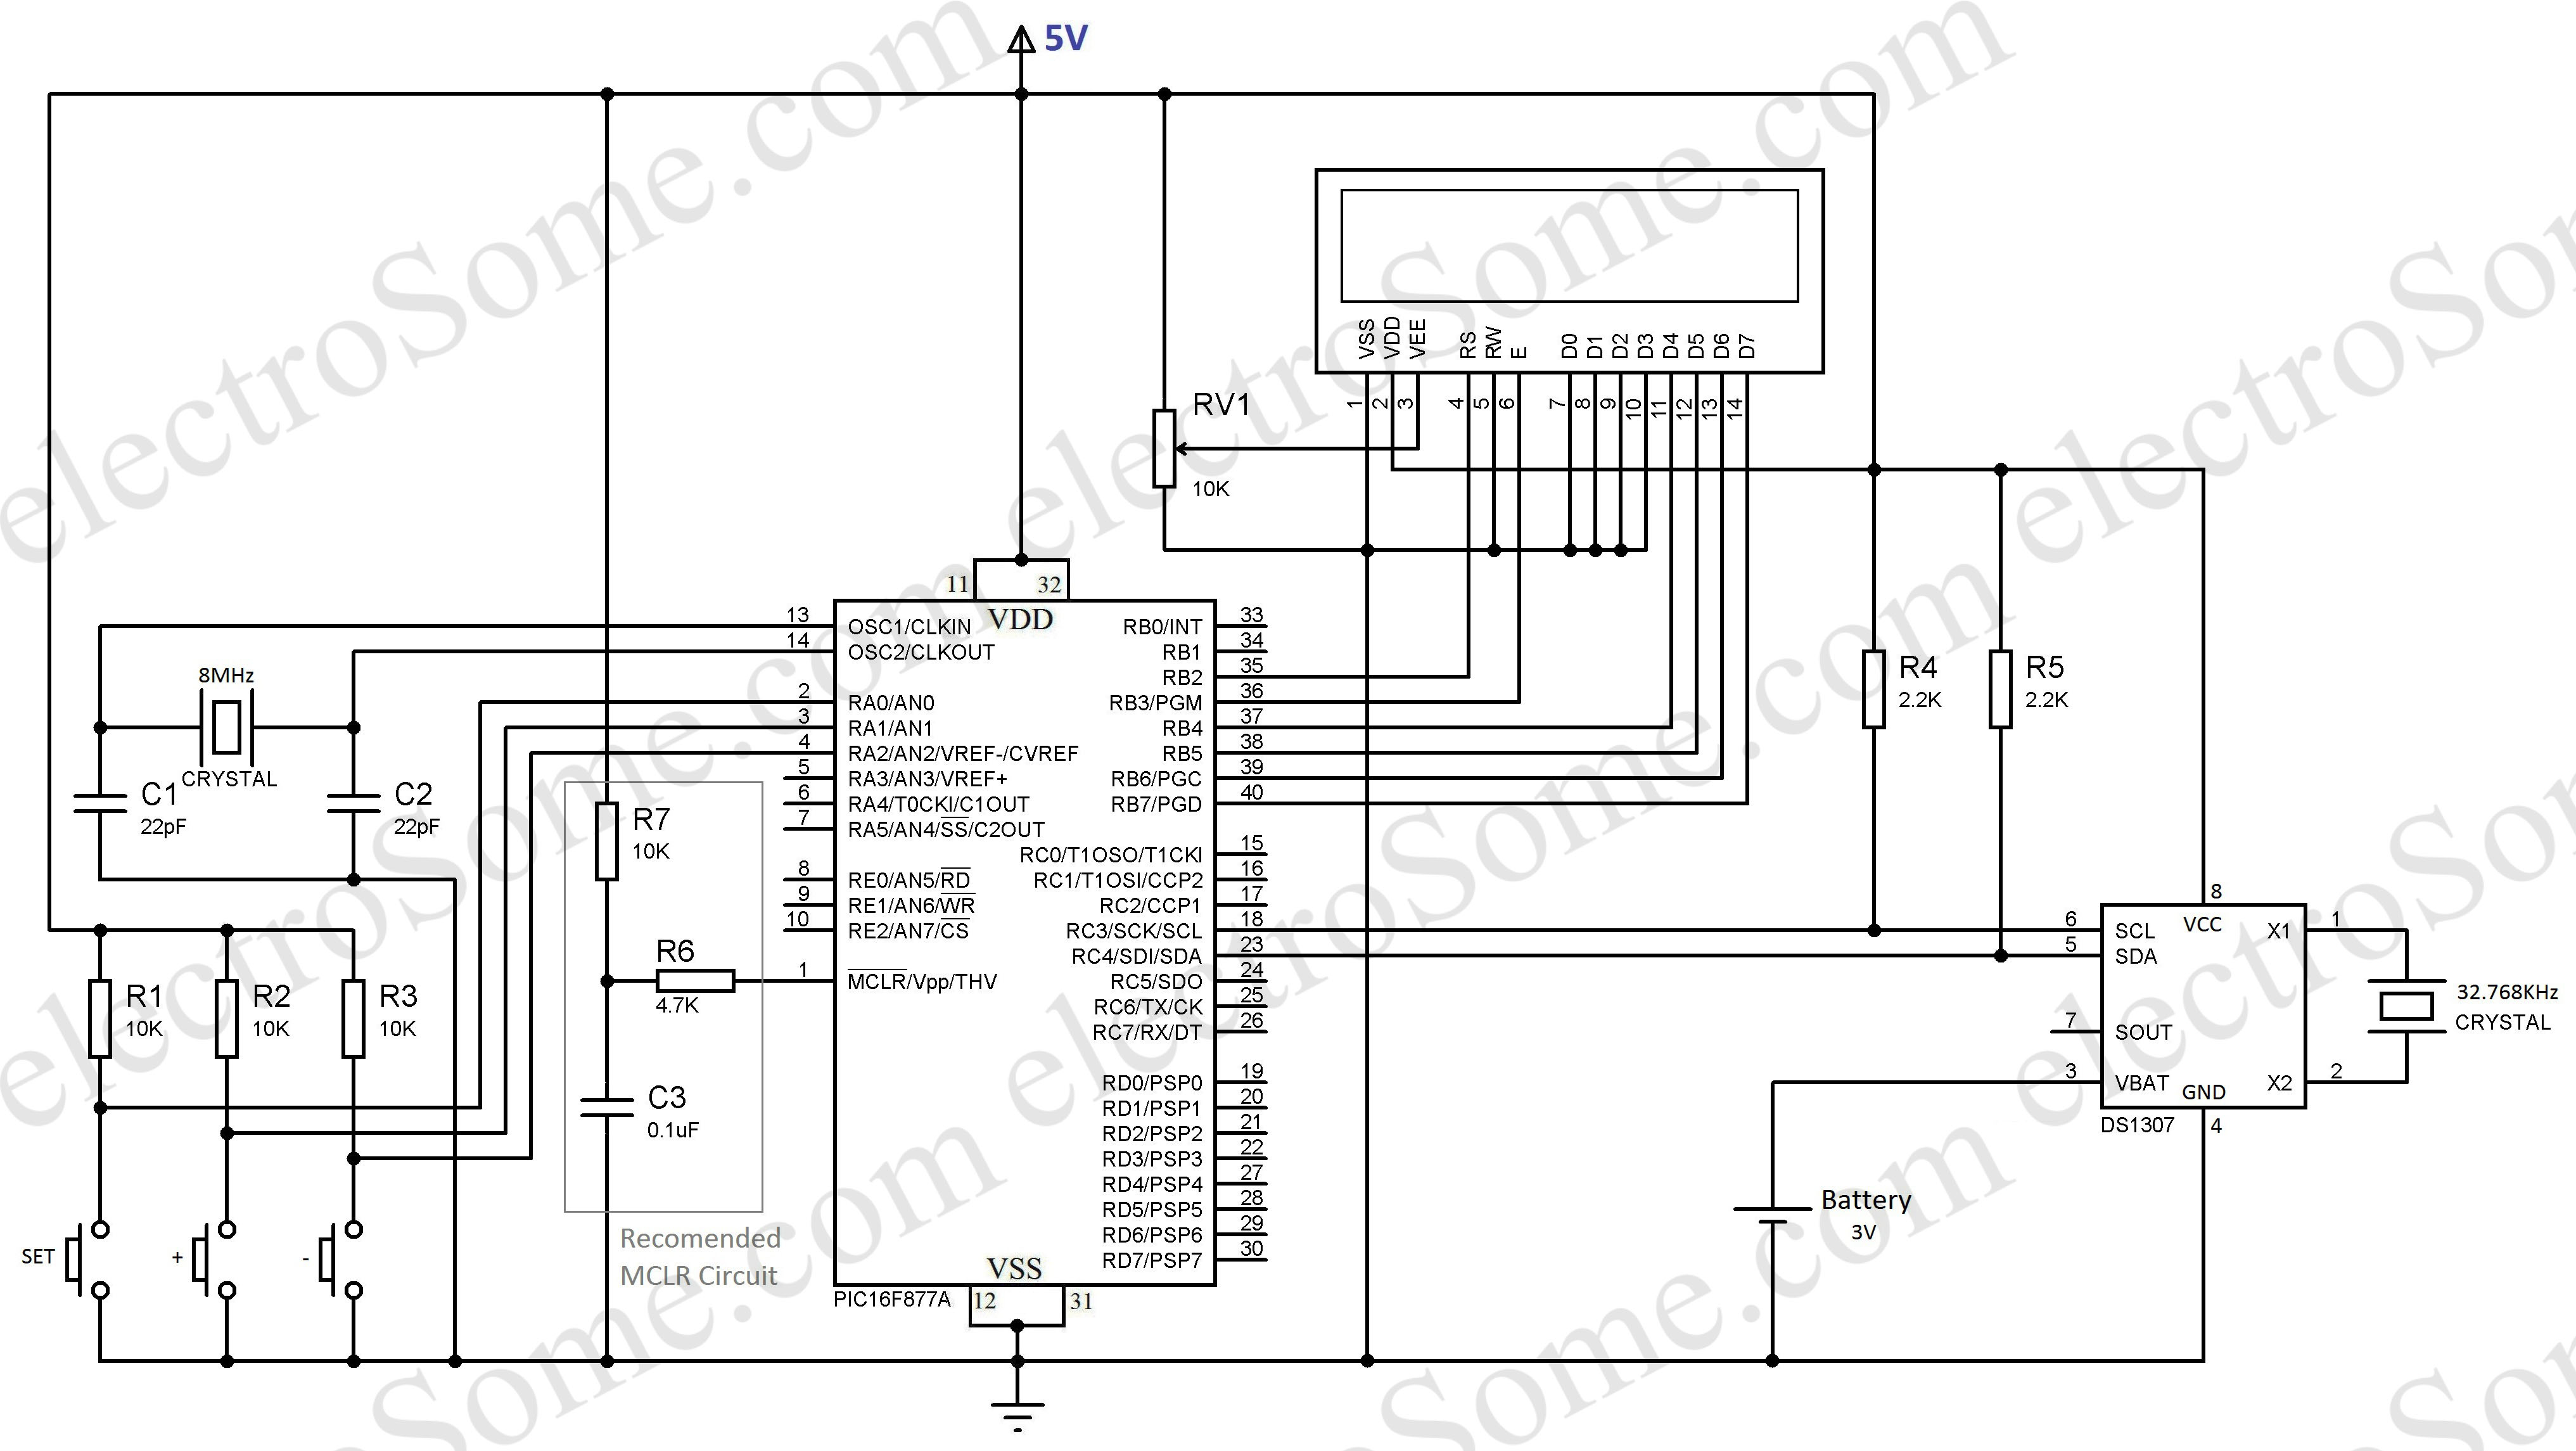 bbbind com wiring diagram Collection-Excellent Ford Ka Wiring Diagram Pdf Best Image 20-m